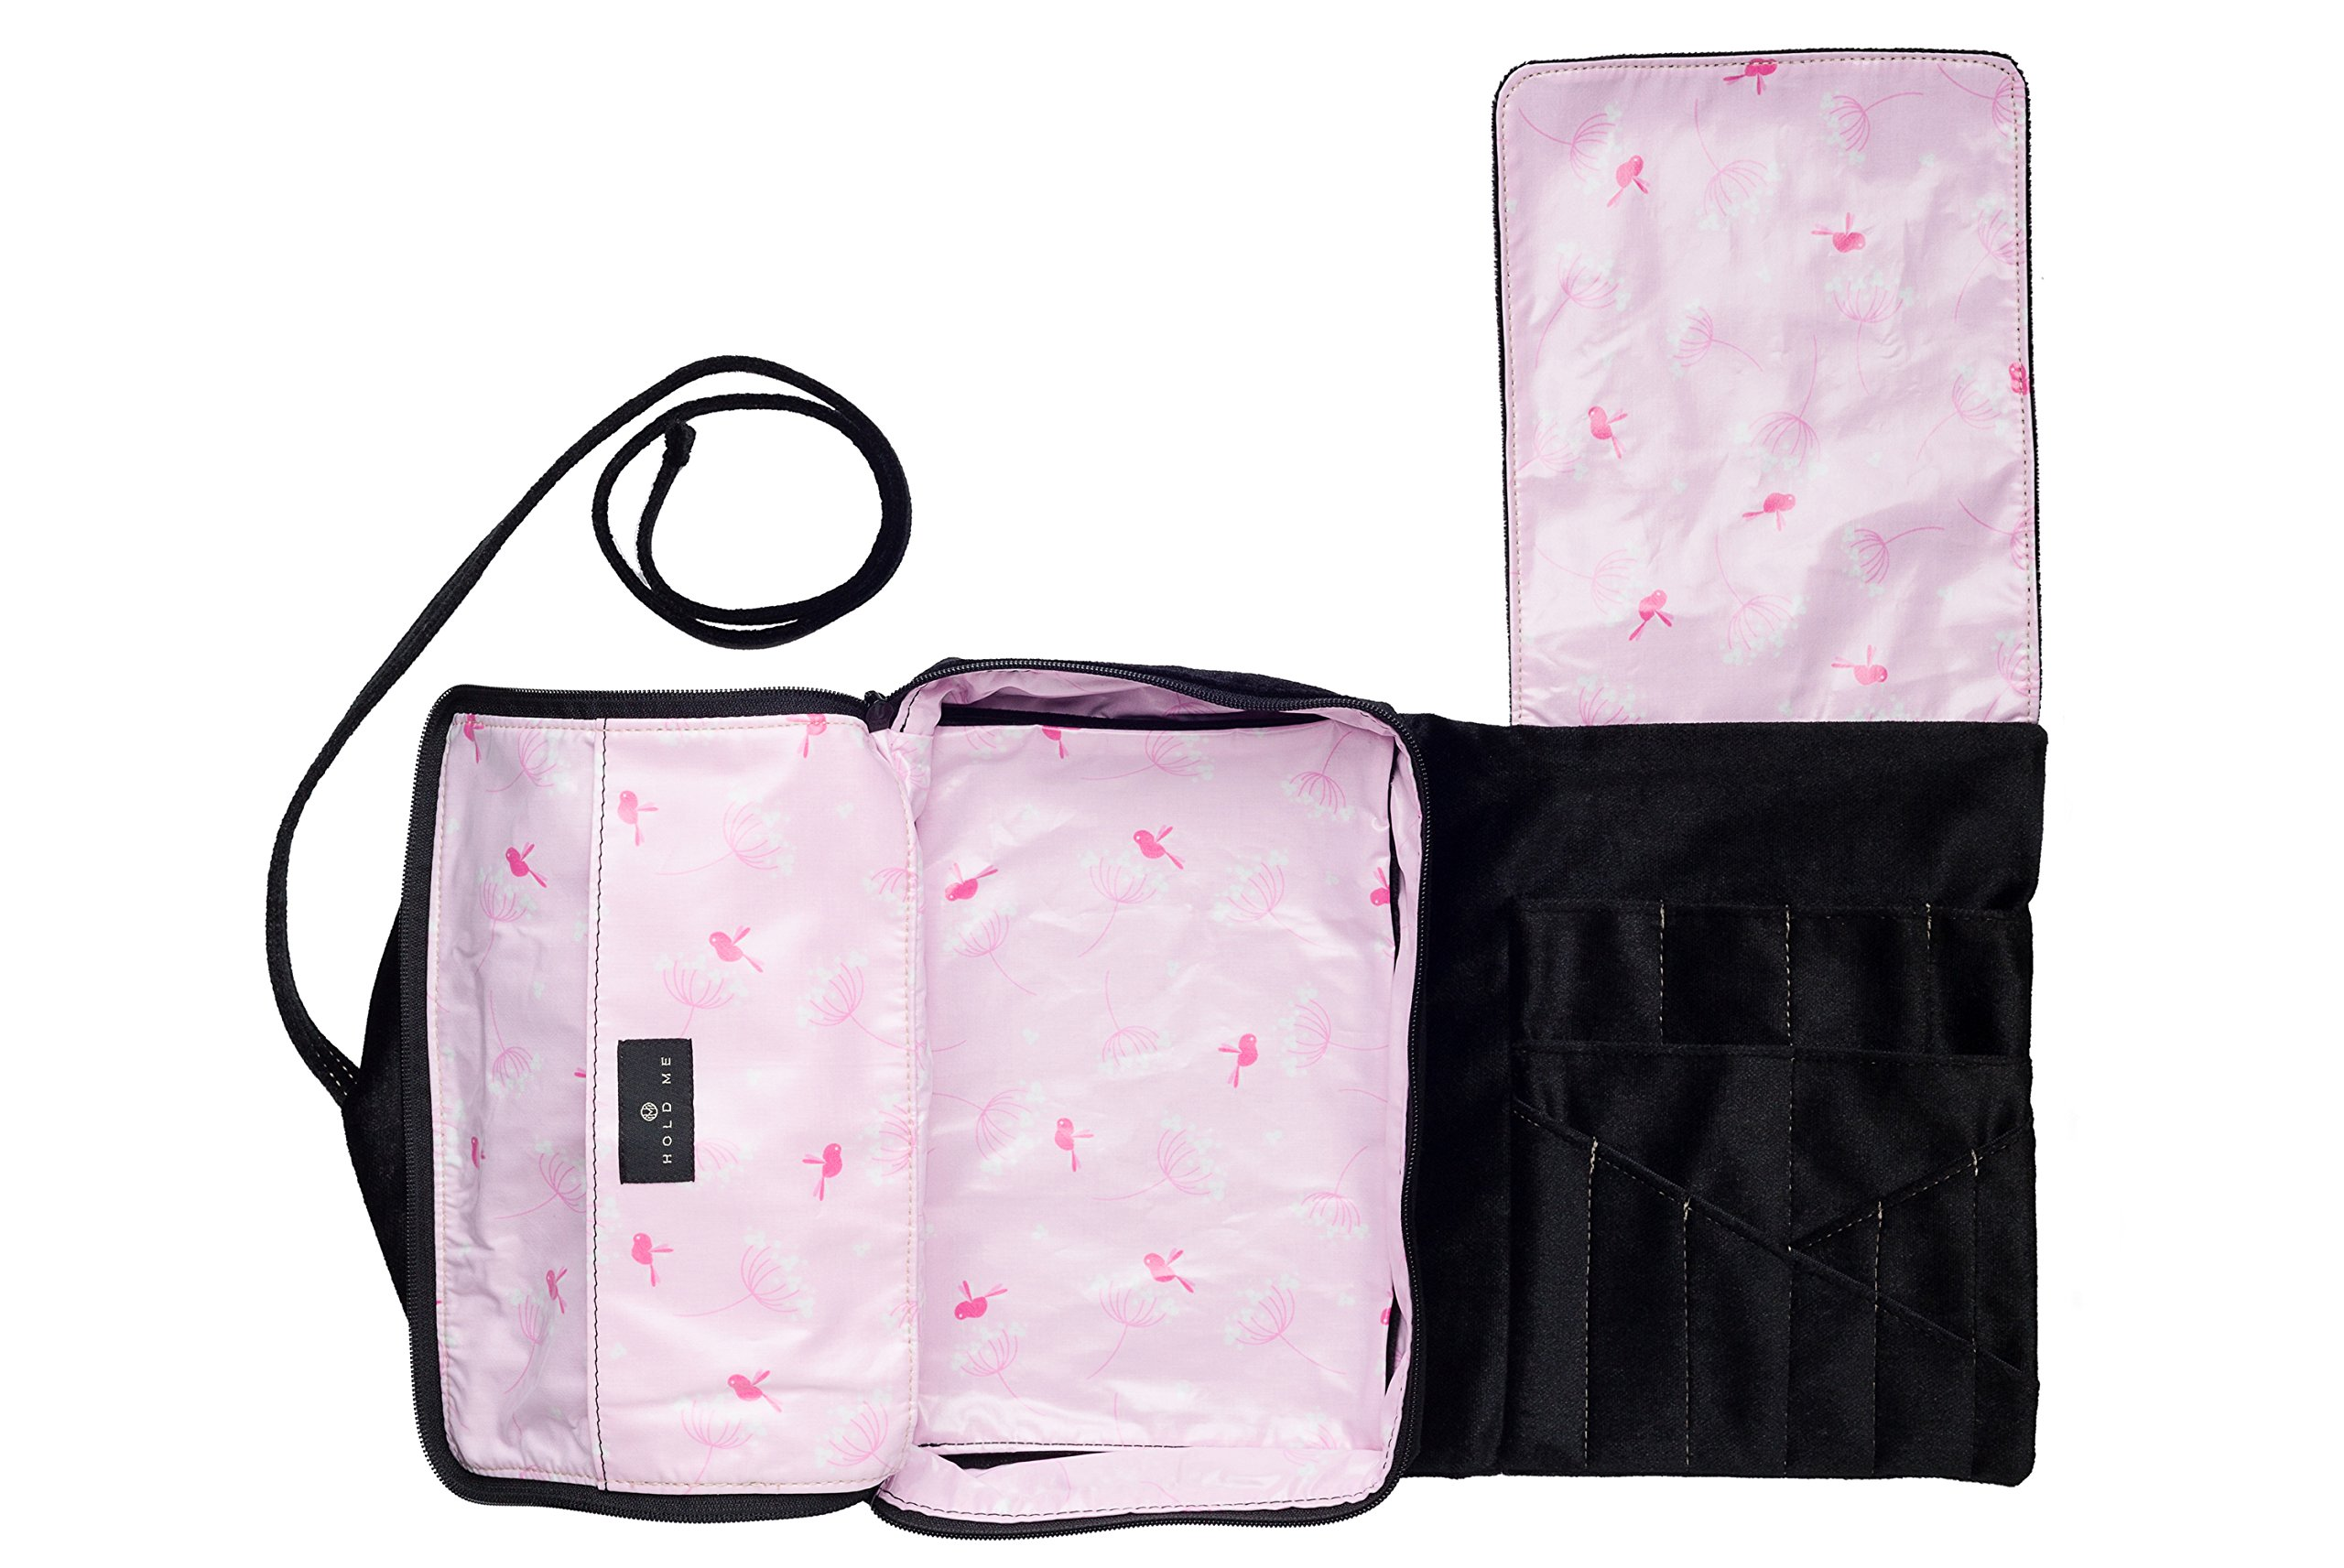 Hold Me Bag - ''Dear Darla'' - Makeup & Brush Organizer by Hold Me Bag (Image #2)